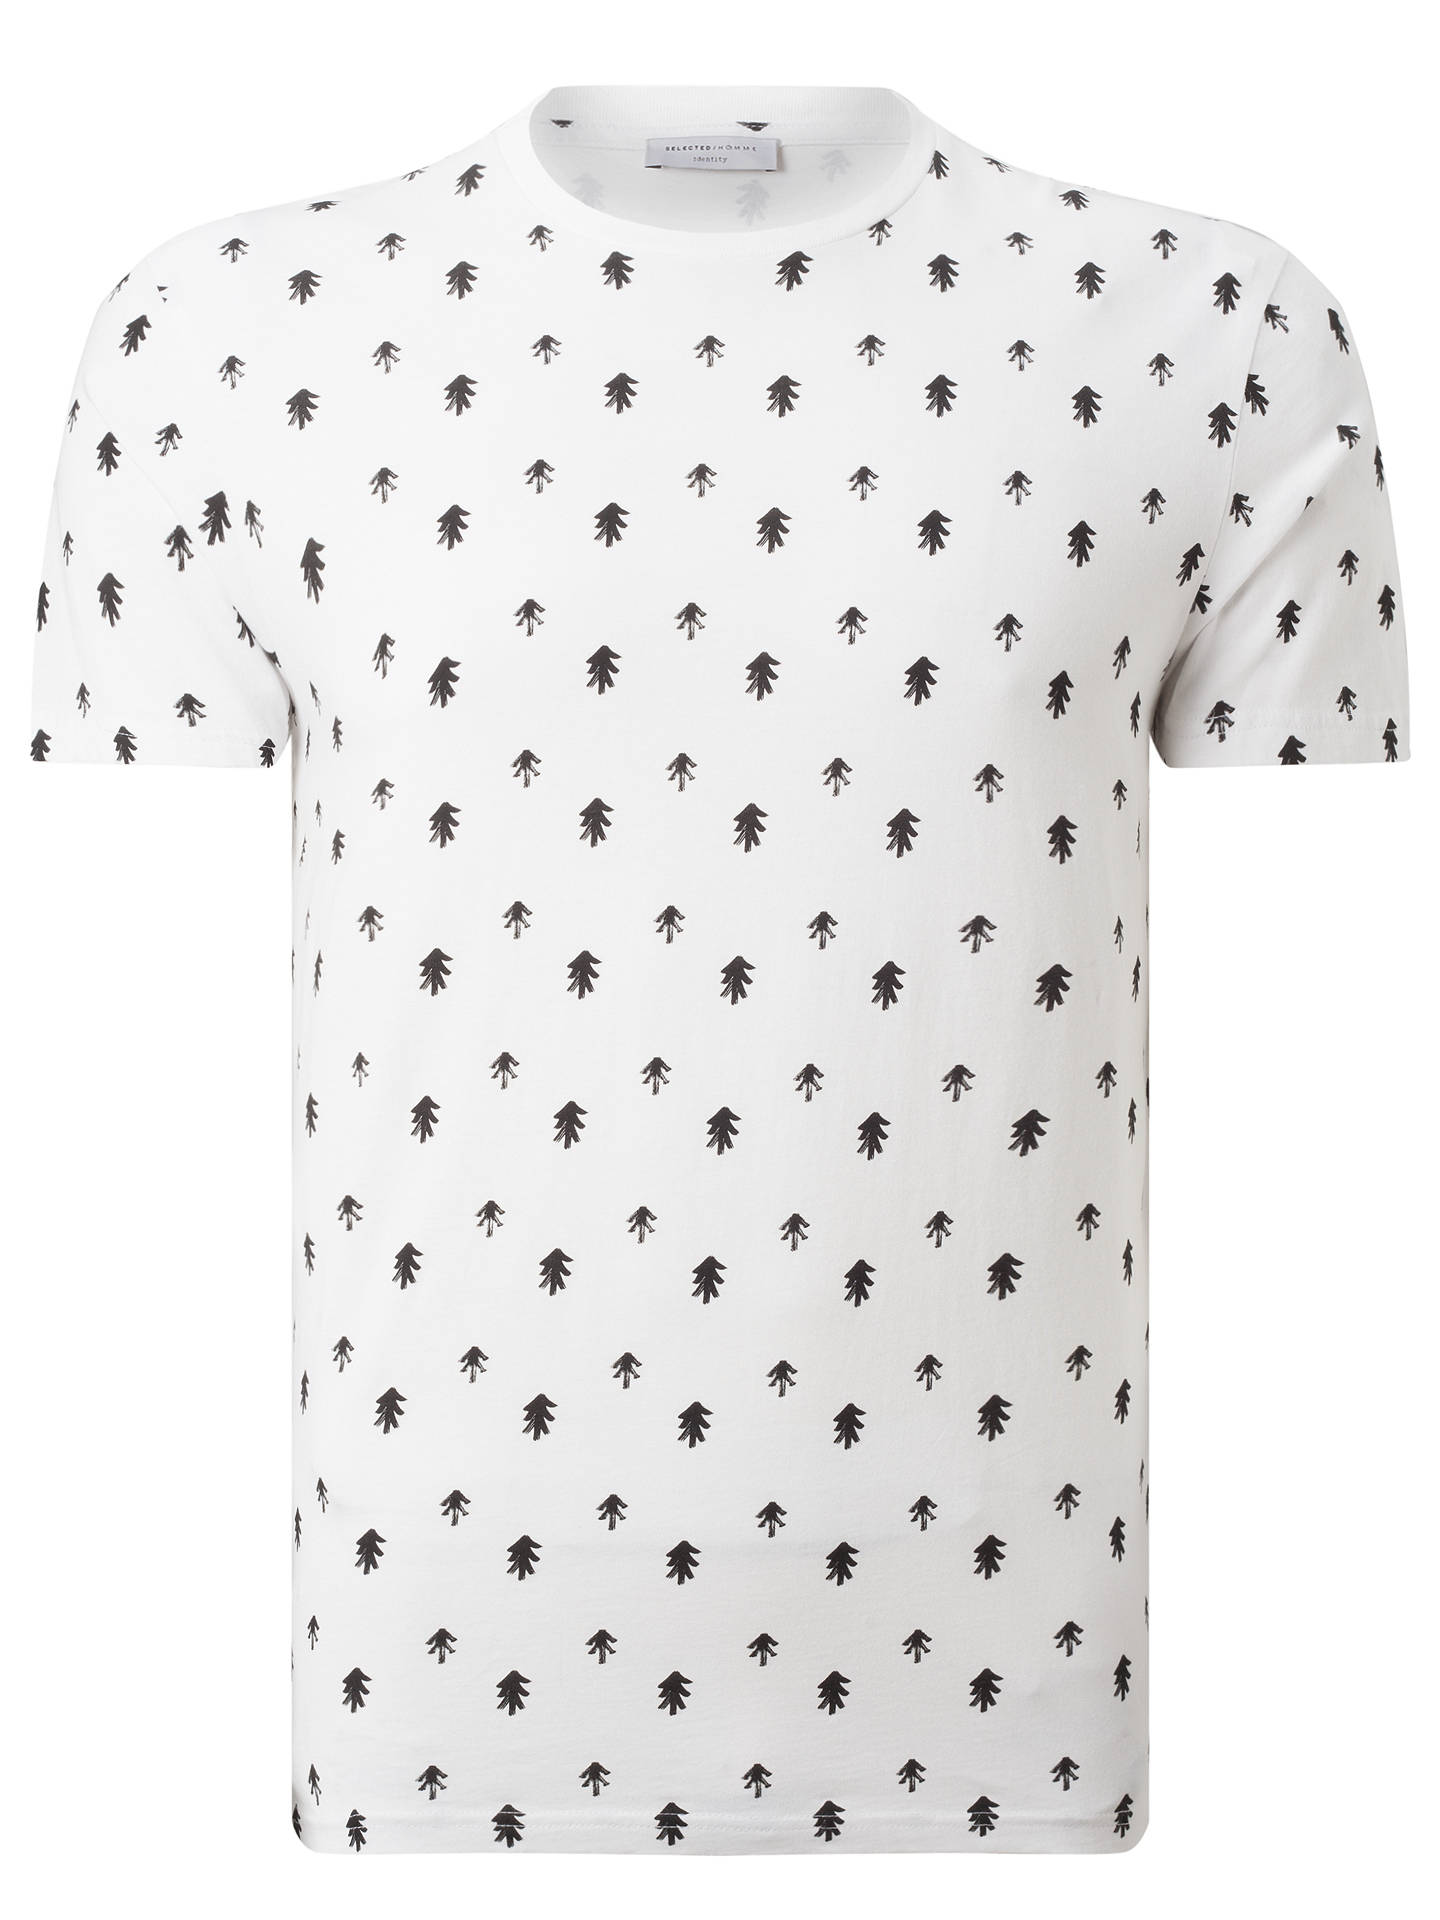 43028723983be Buy Selected Homme Three All-Over Print Short Sleeve T-Shirt